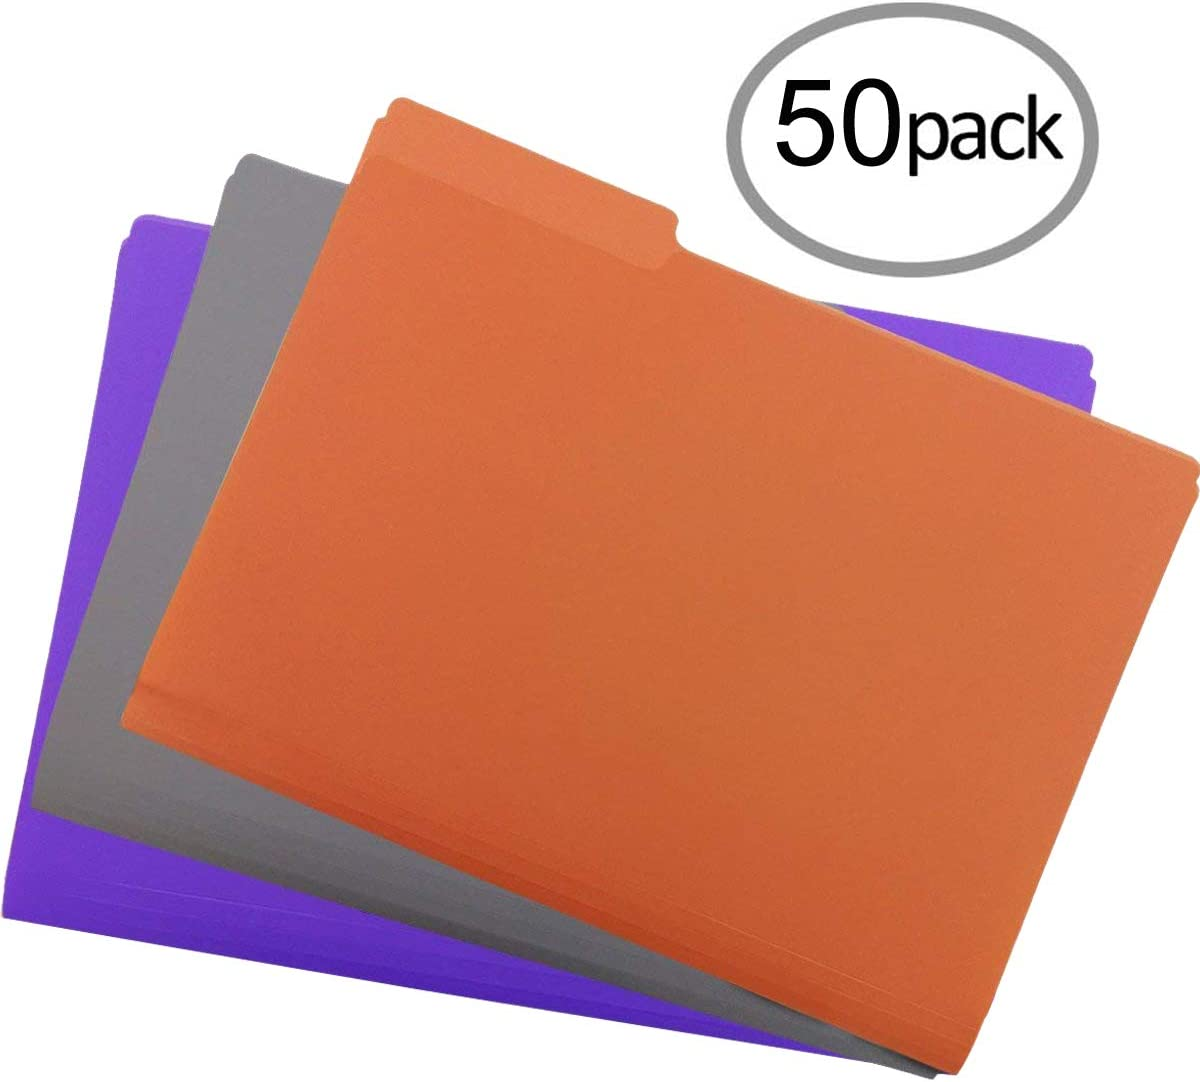 Plastic File Folders 50PCS Heavy Duty Plastic Folders 1/3 Cut Tab Letter Size Assorted Colors for Organizing and Easy File Storage Plastic File Folders Colored : Office Products